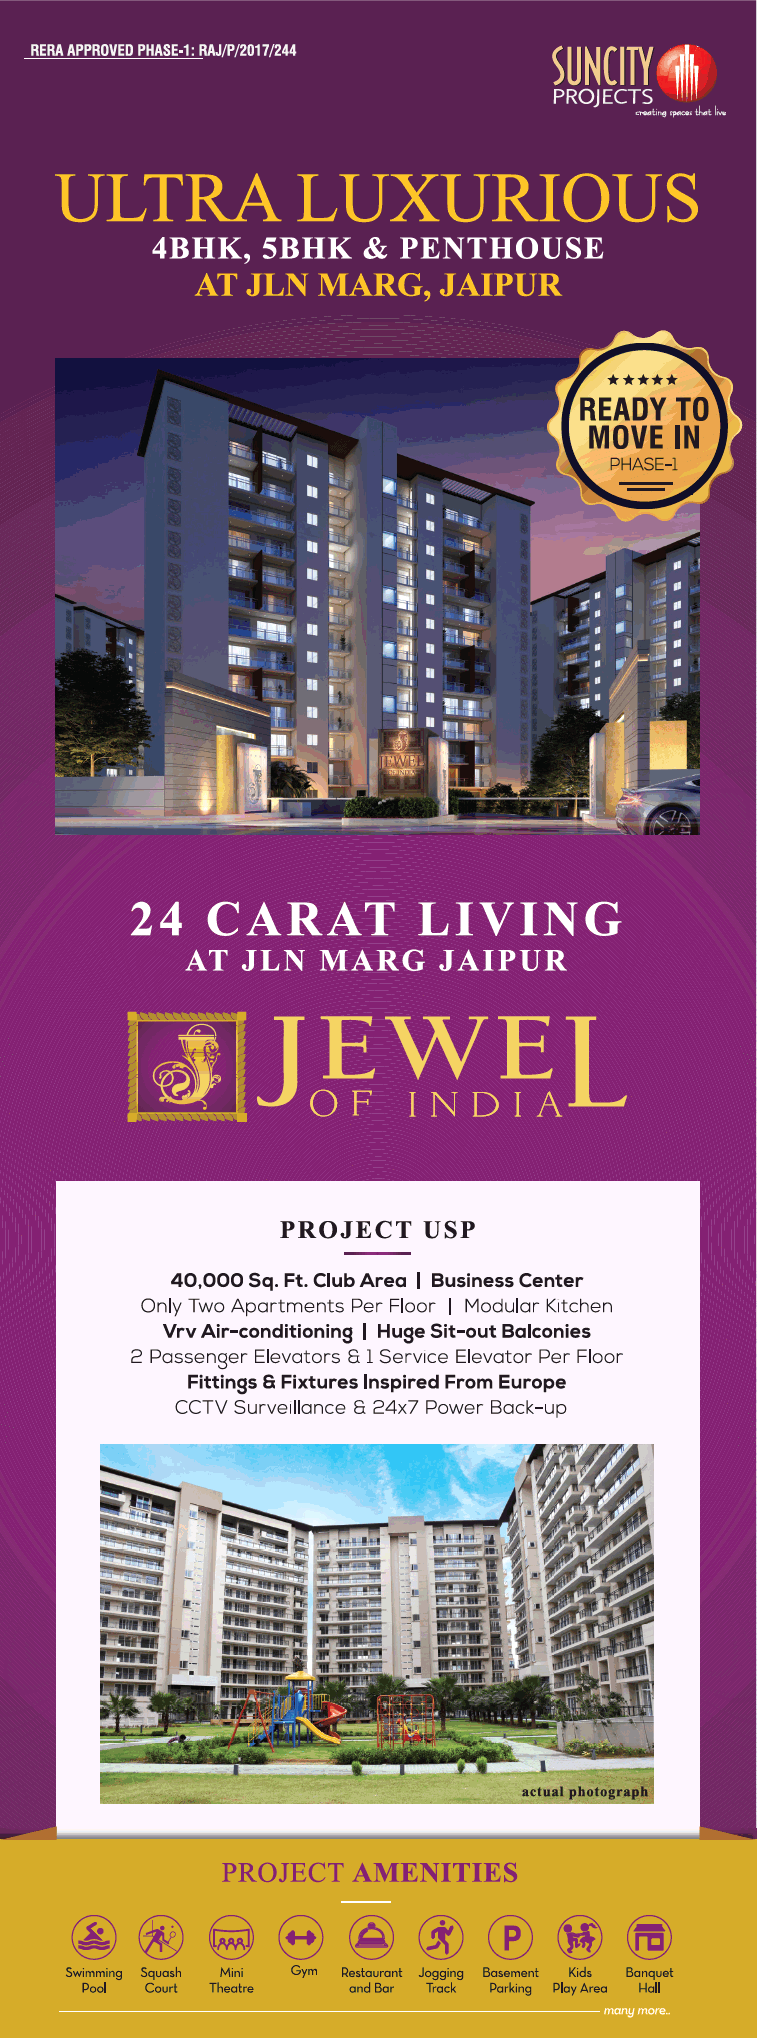 Ultra luxurious 4BHK 5BHK and penthouse at Suncity Jewel of India in Jaipur